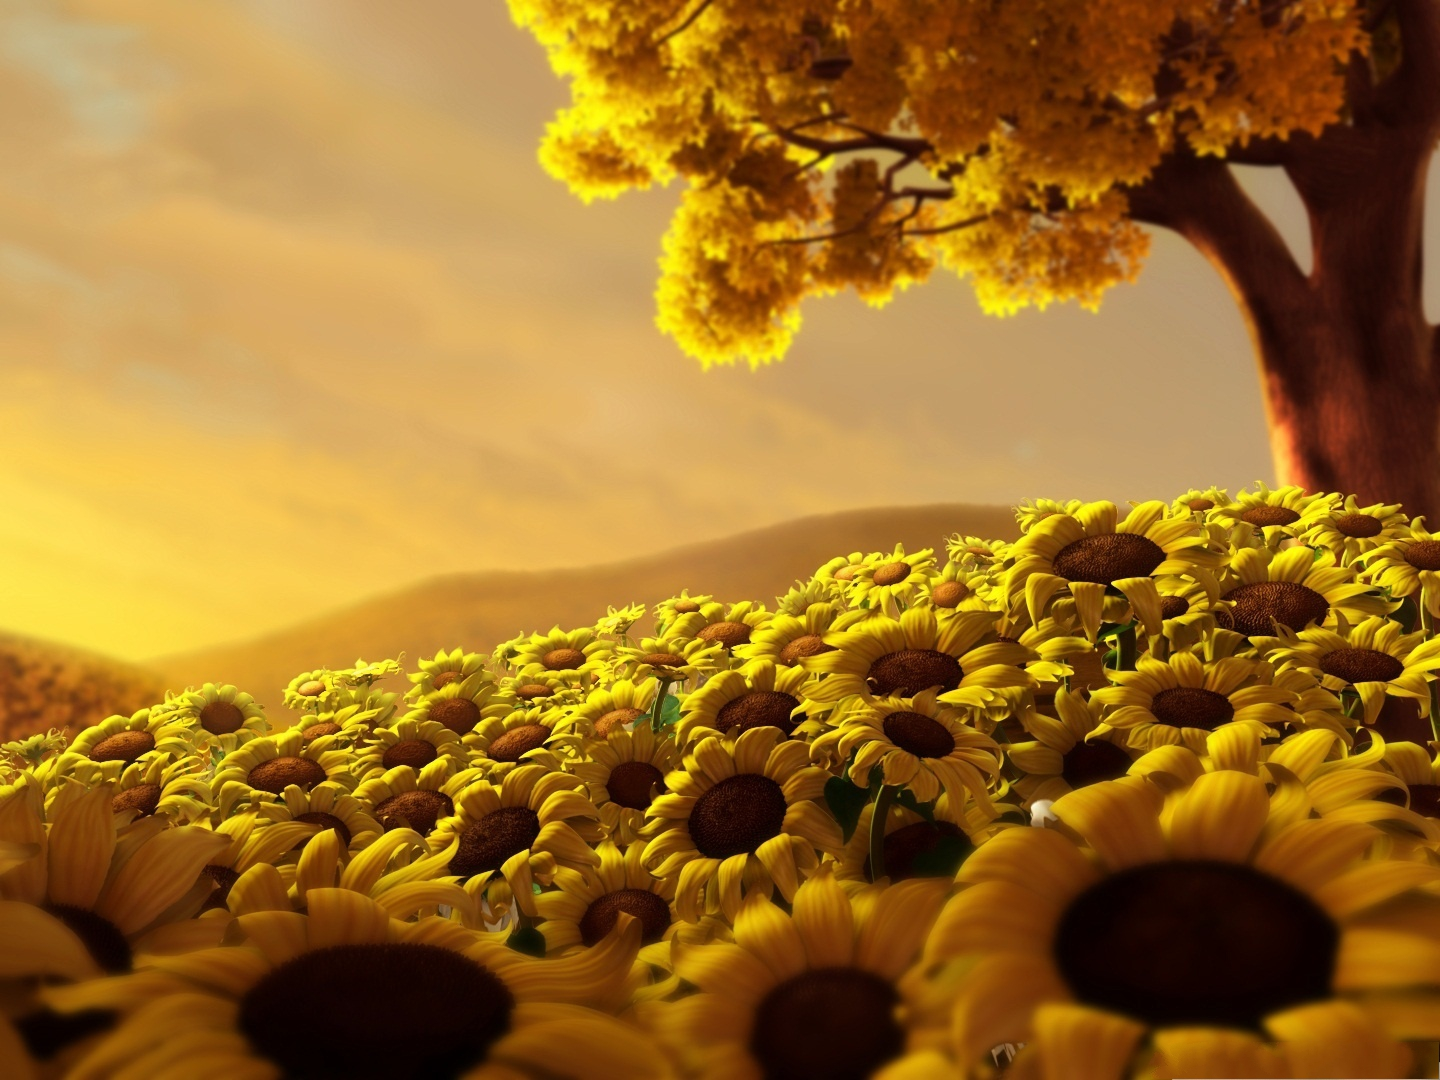 click to free download the wallpaper--Flowers in 3D, Blooming Sunflowers Under Yellow Tree, Combine Each Other Well 1440X1080 free wallpaper download